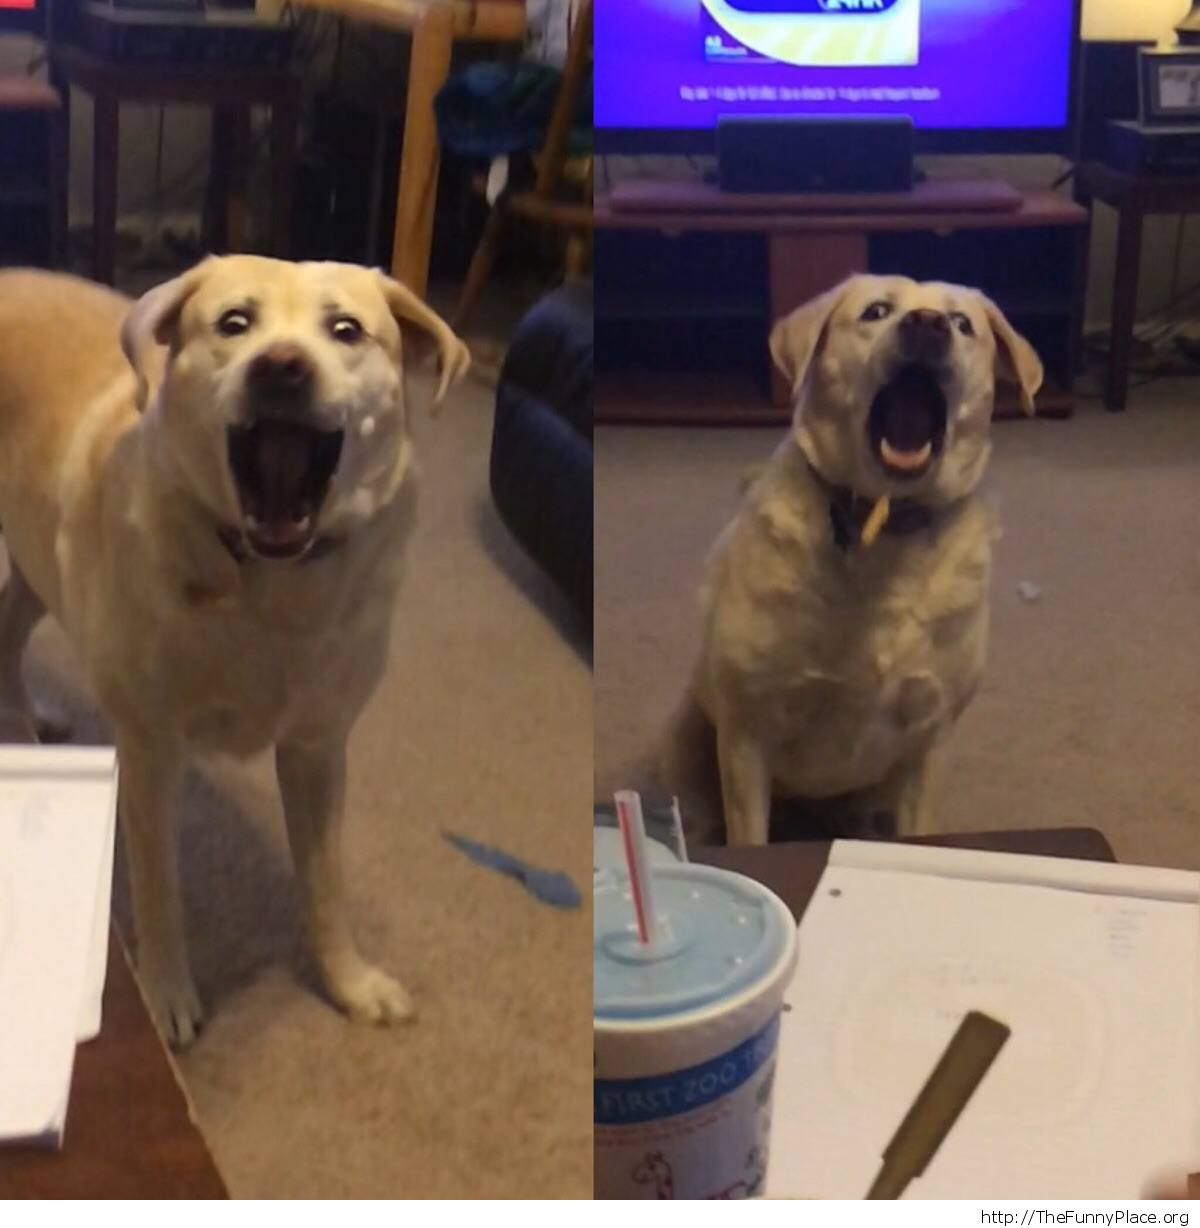 The faces of my dog trying to catch a fry